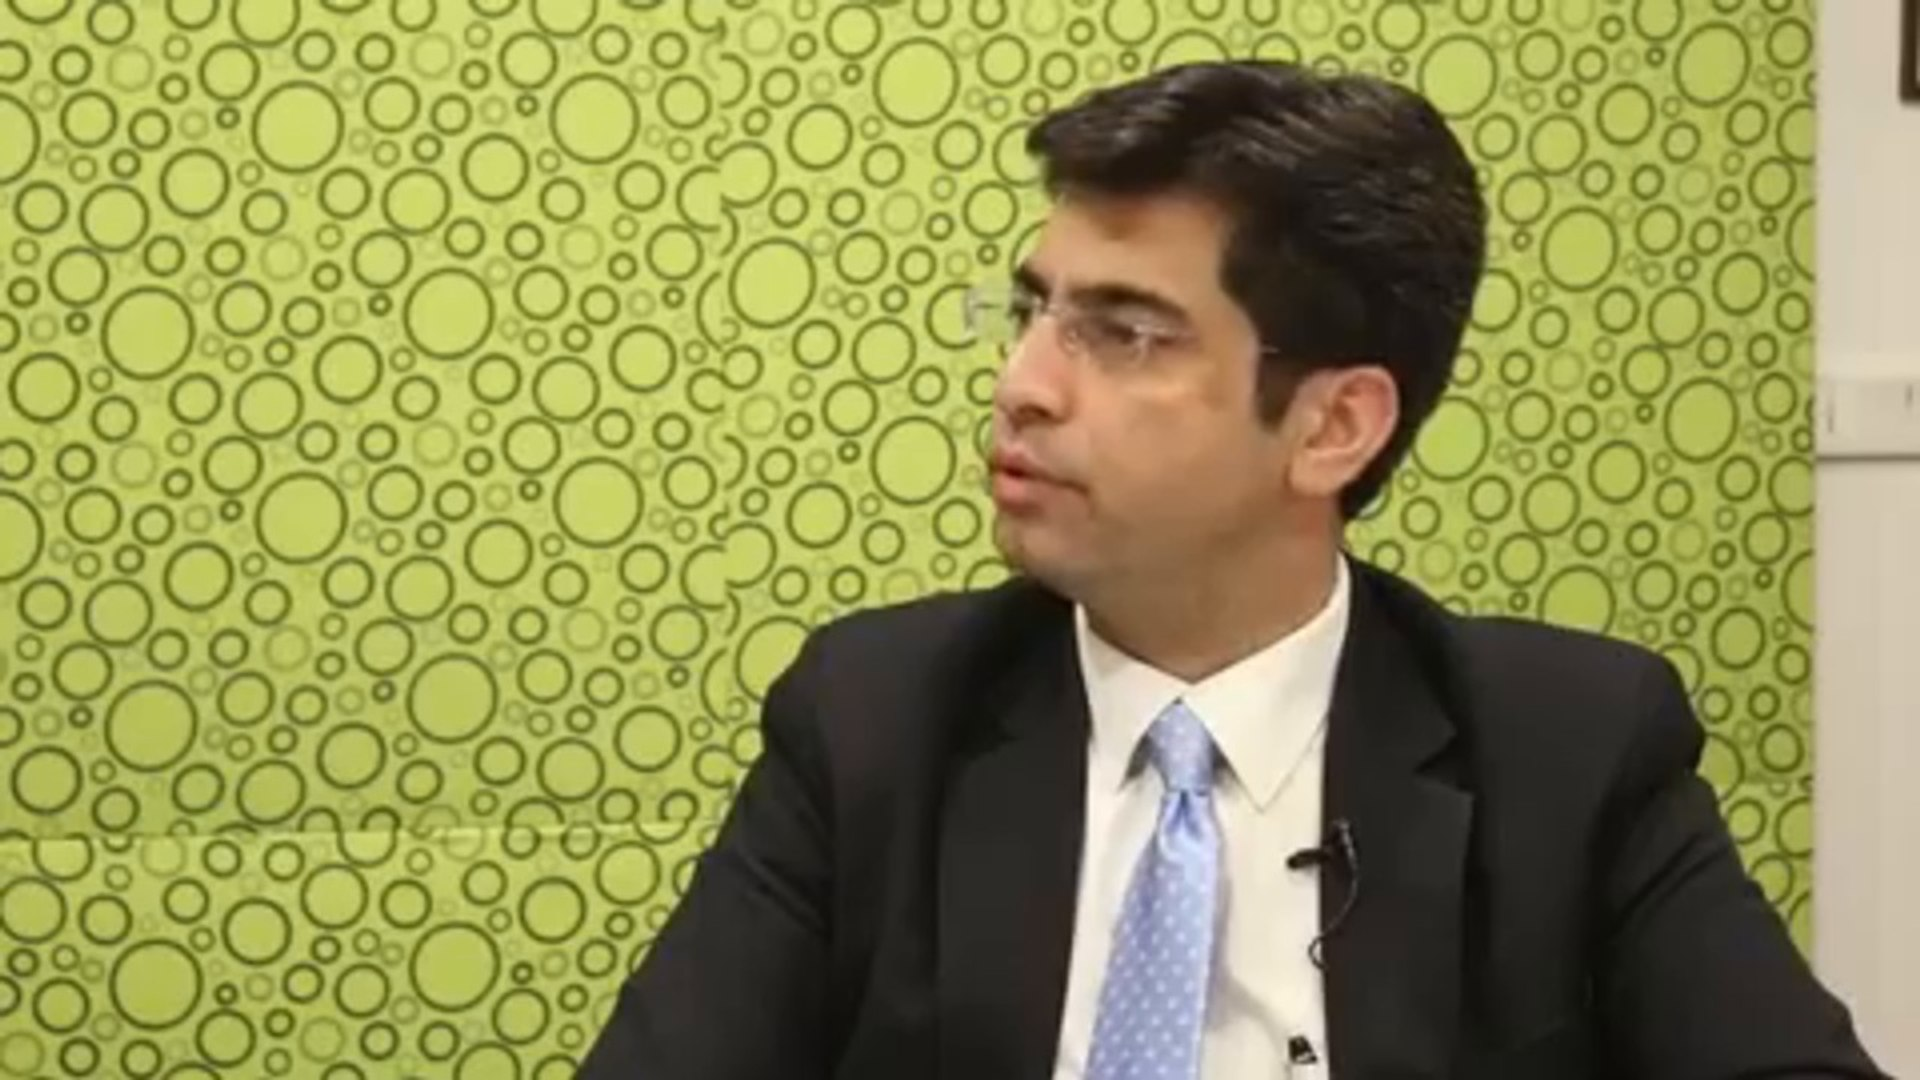 Budget 2017 -  Make Tax Rates Lucrative For Foreign Investors, Says Prashant Kapoor, KPMG India